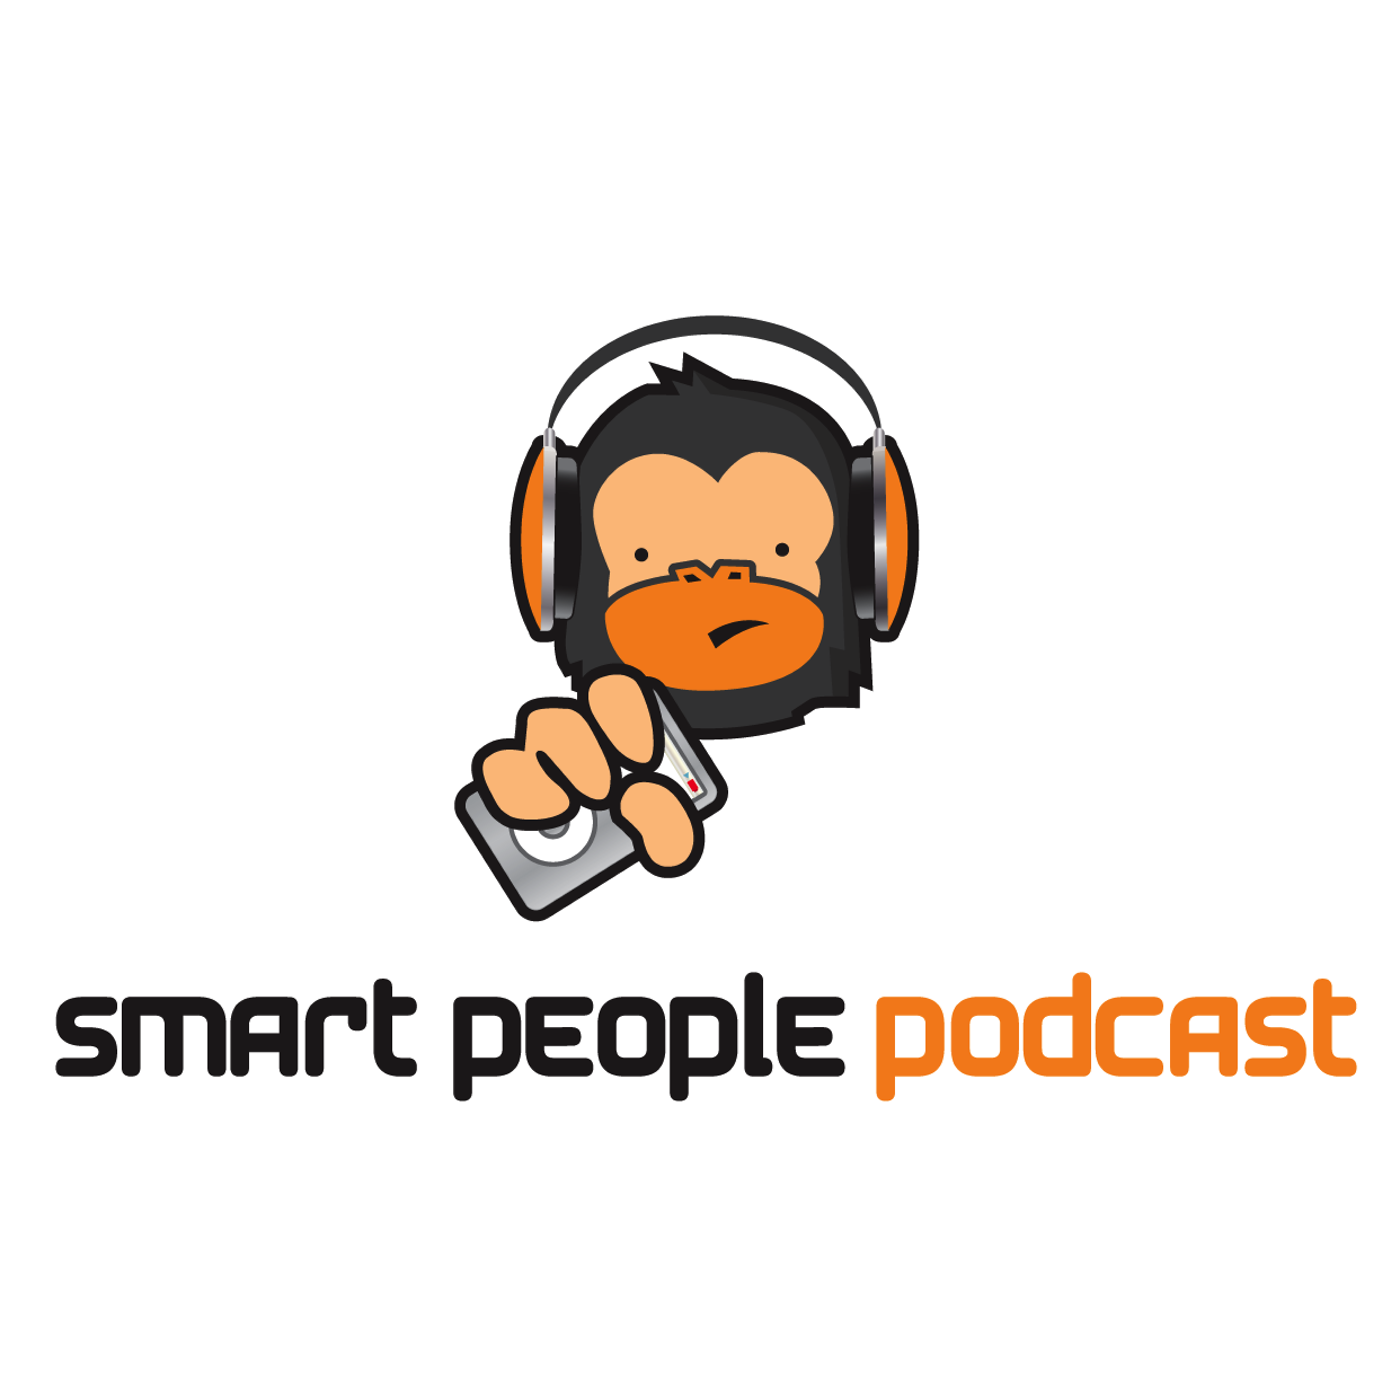 Smart People Podcast | Podcast interviews featuring: Seth Godin, Tony Hsieh, Brene Brown, Dan Pink, and more!